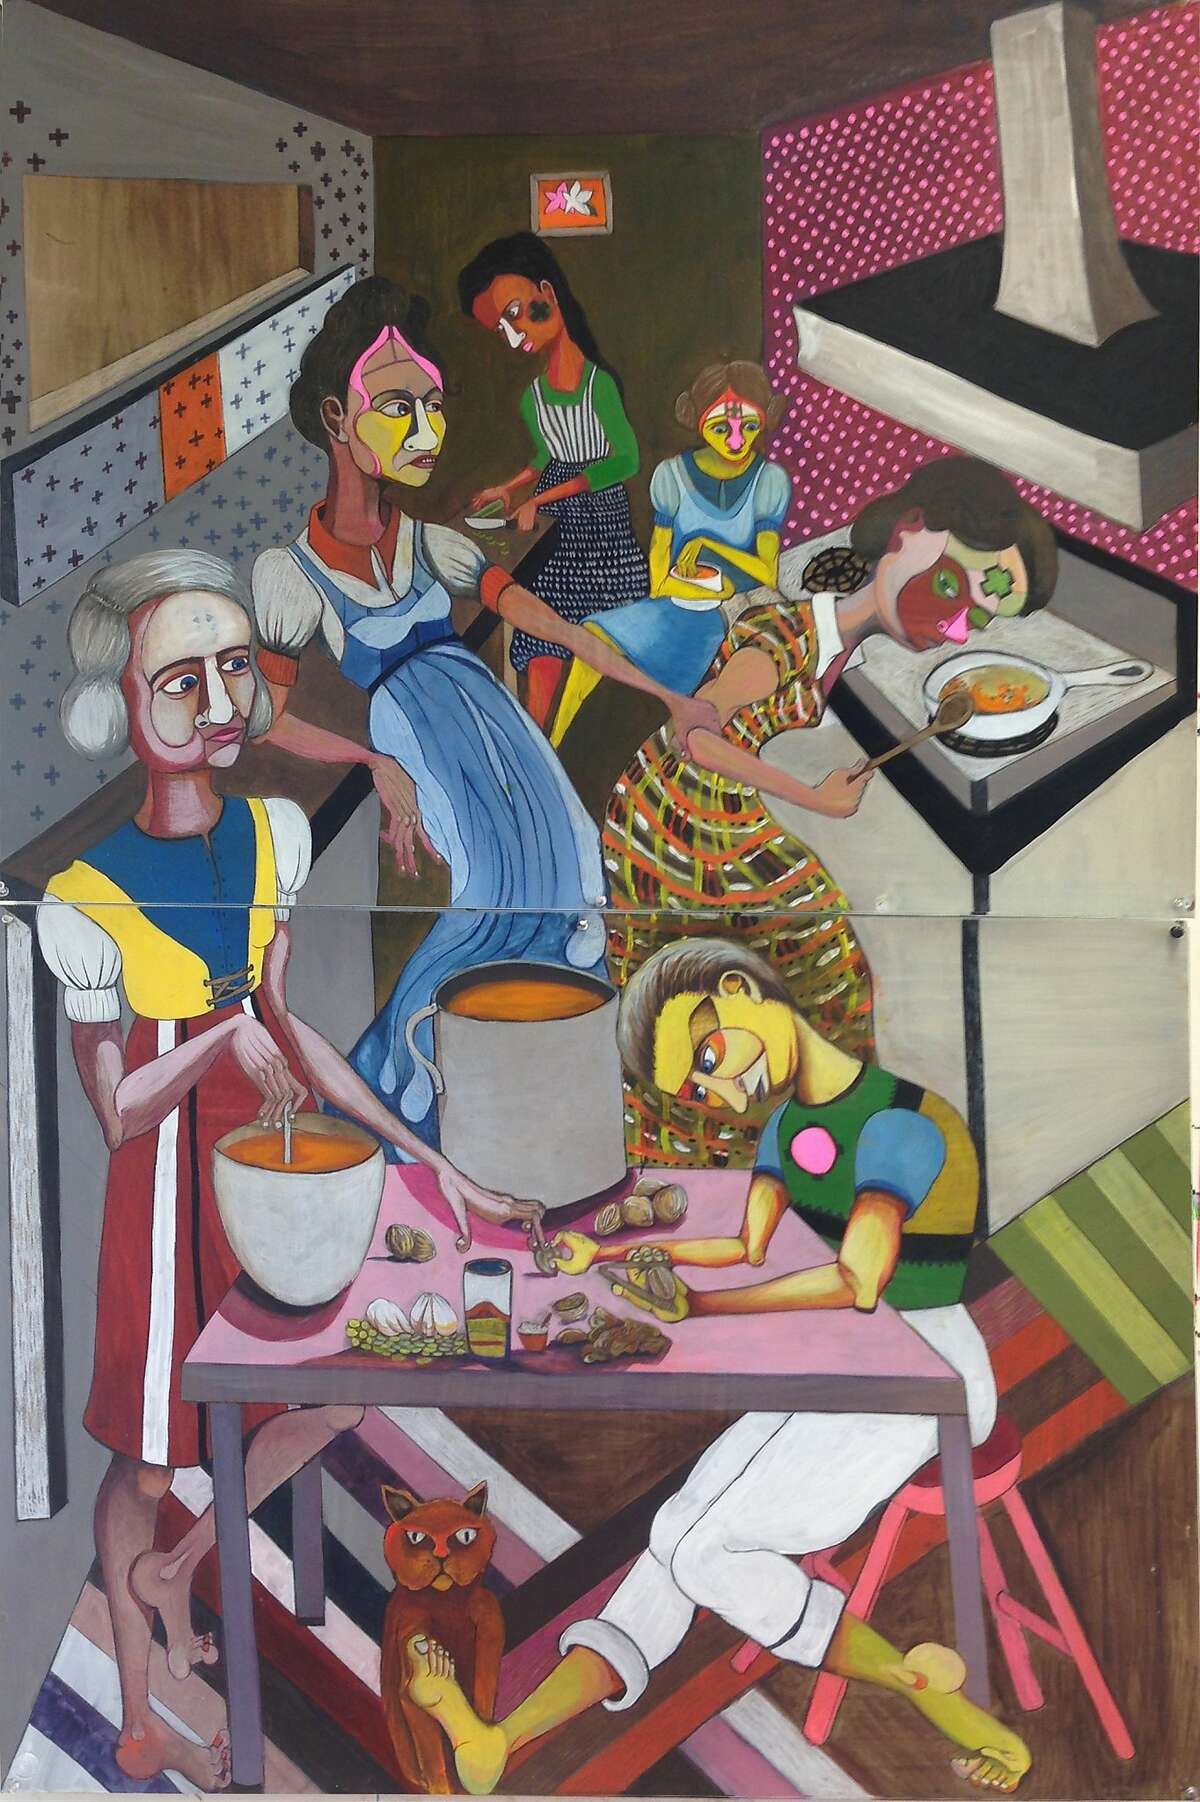 """Leigh Barbier's 40-by-60-inch gouache, acrylic, ink and color pencil on paper work """"The Soup Makers"""" is showcased in """"The_Inbetween_Forest"""" through Dec. 5 at Gallery 60Six."""